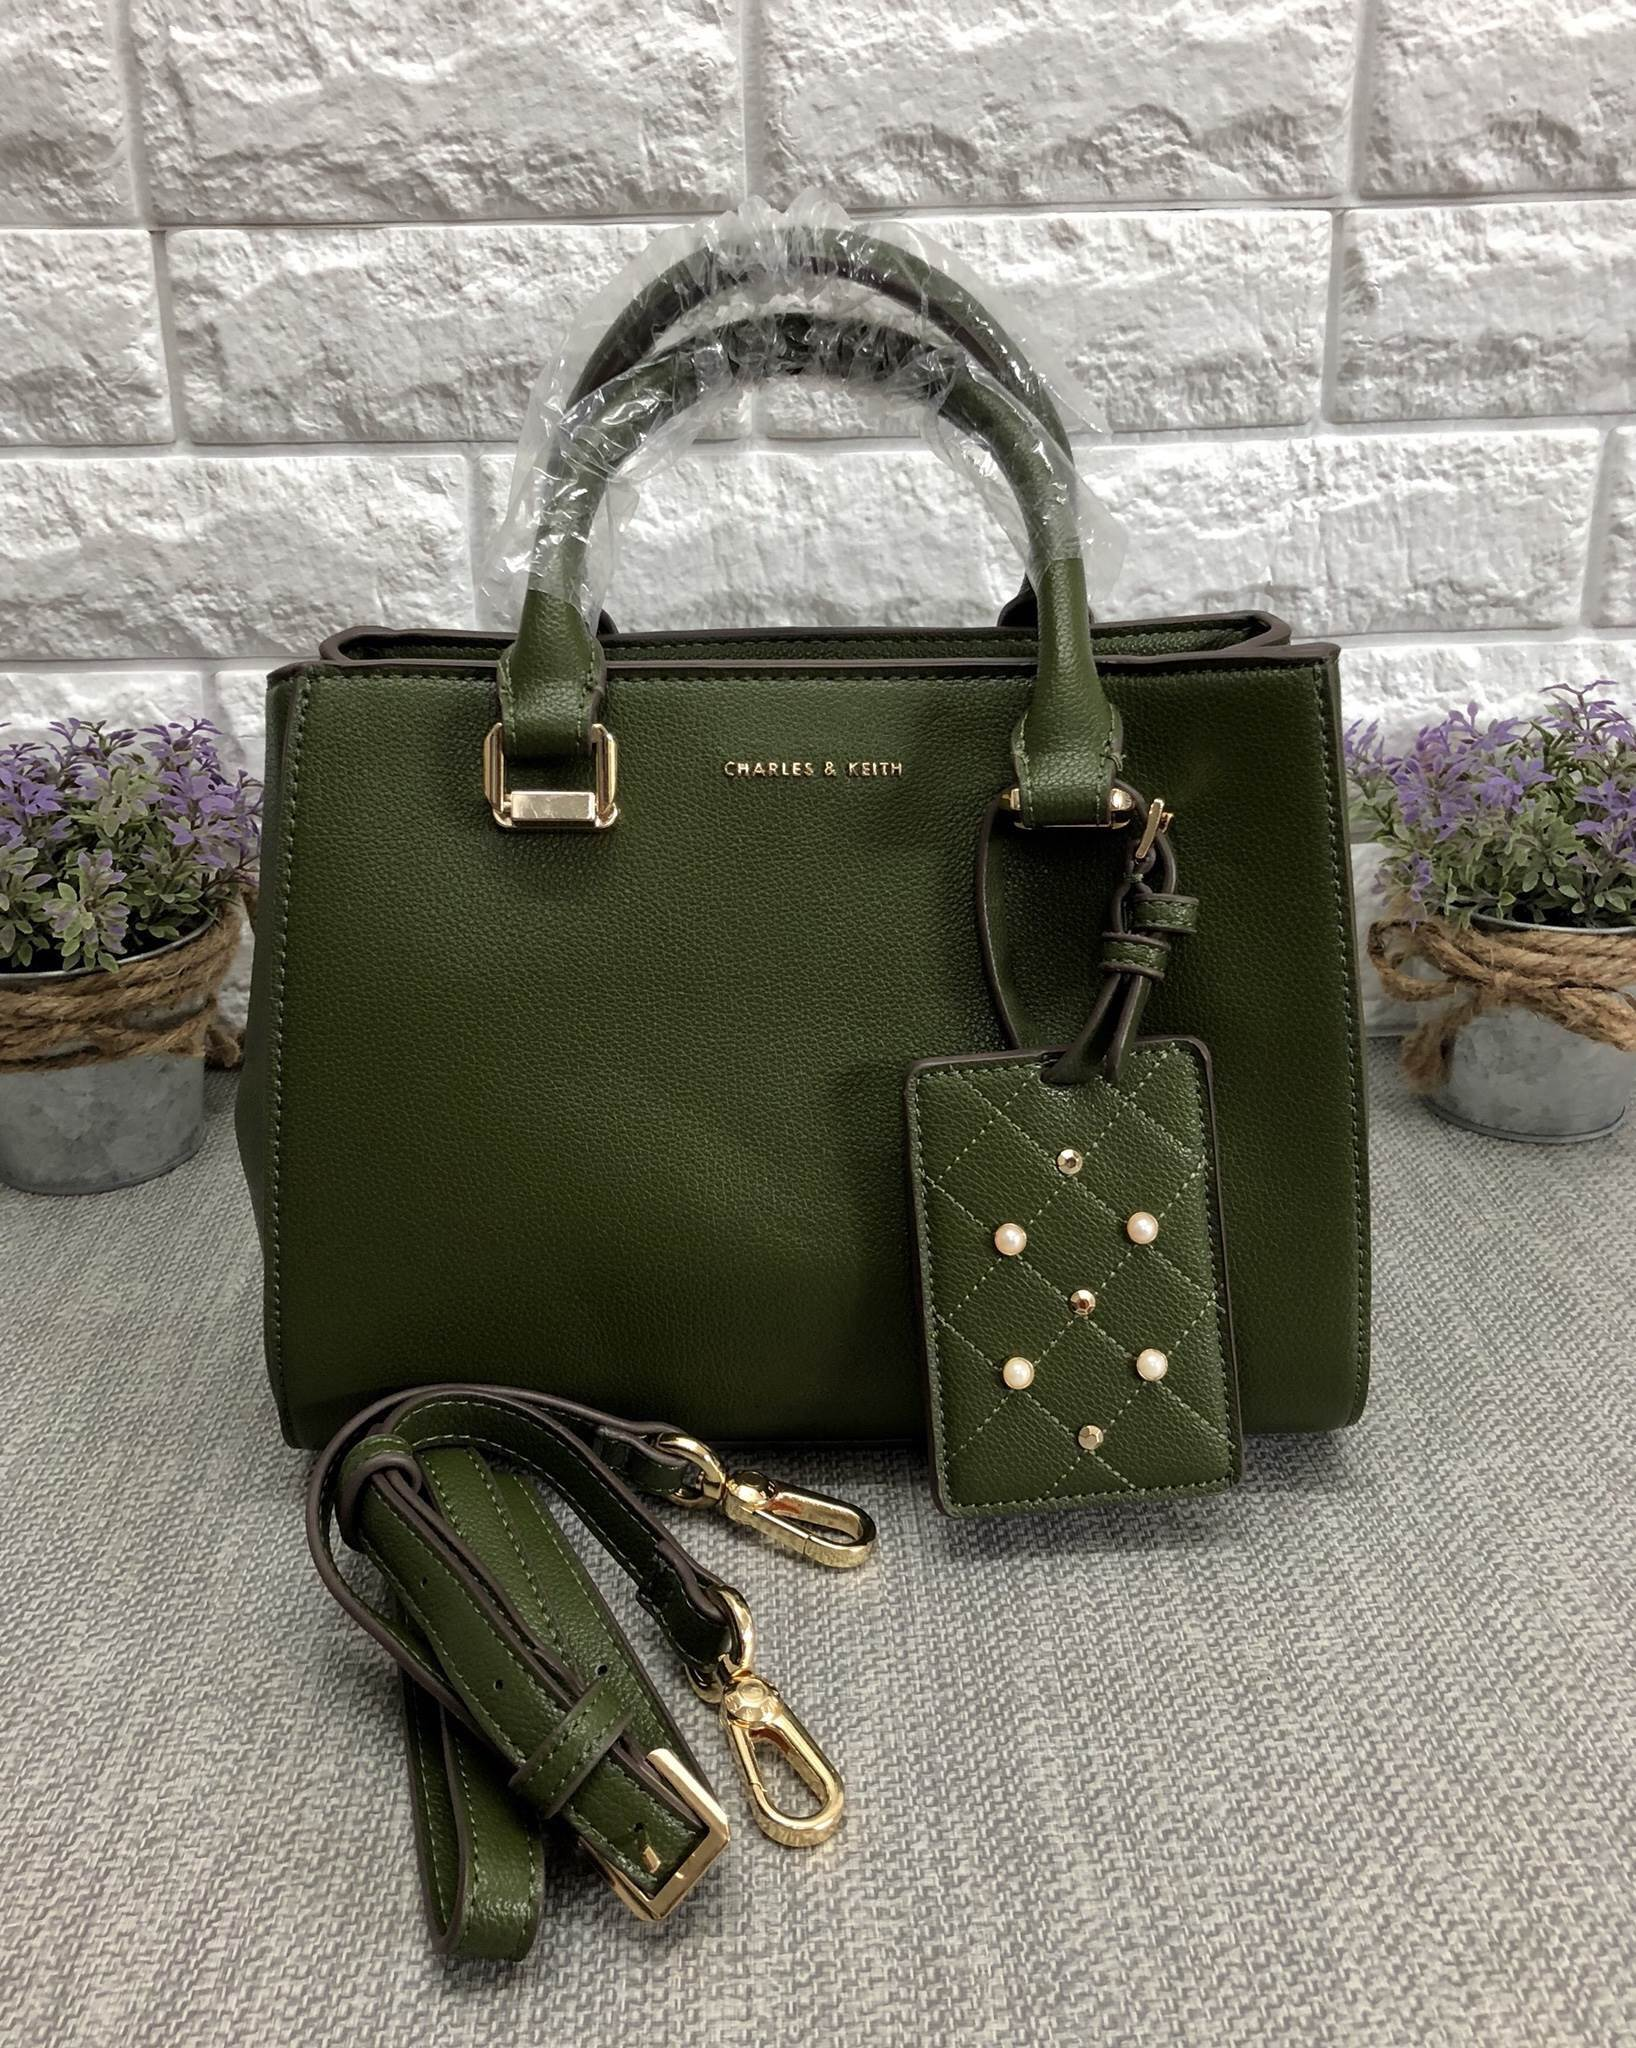 CHARLES & KEITH LARGE STRUCTURE CITY BAG *เขียว